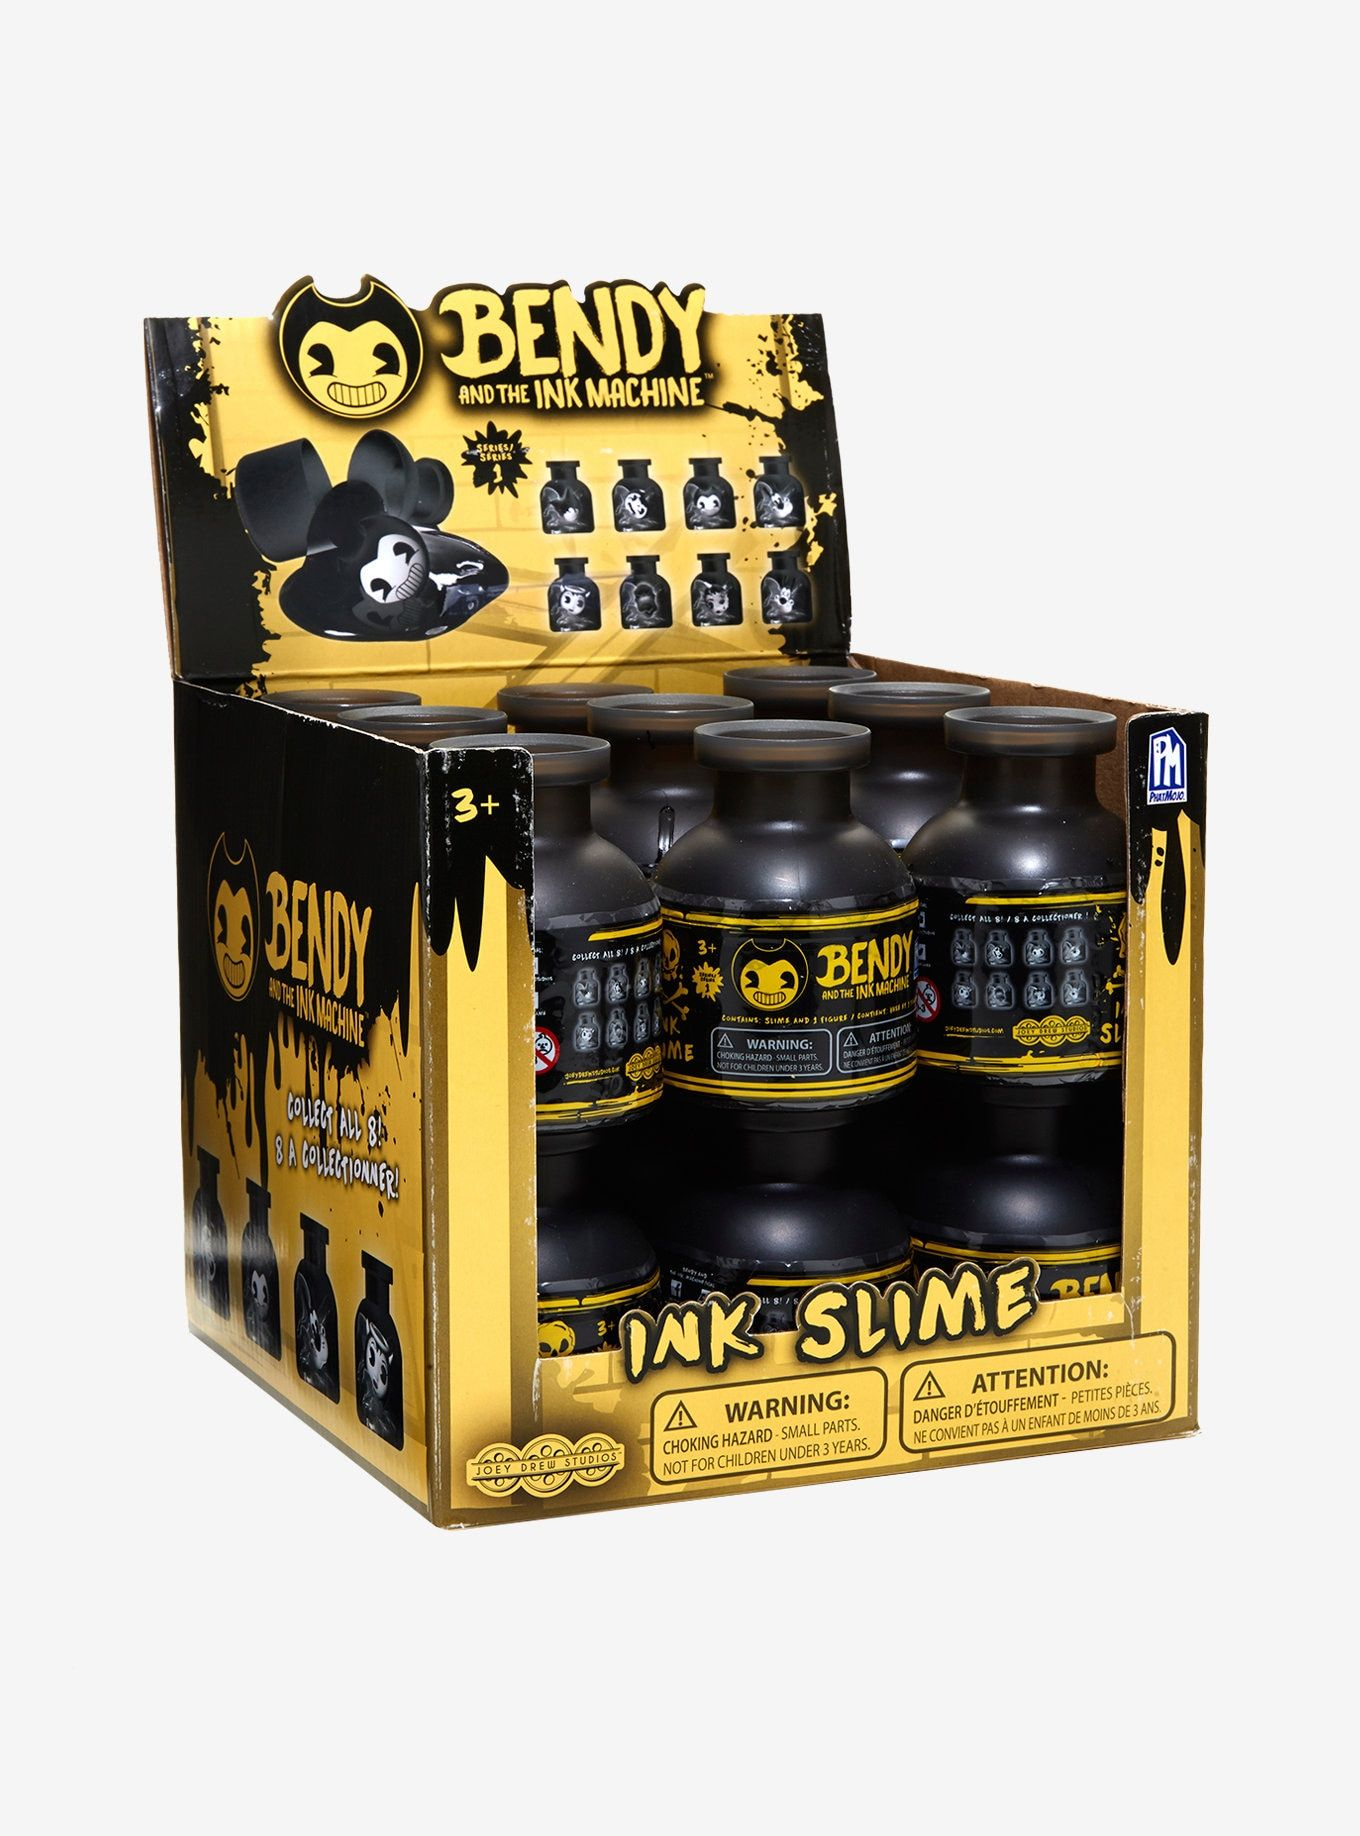 Bendy And The Ink Machine Ink Slime Contains Slime And 1 Toy